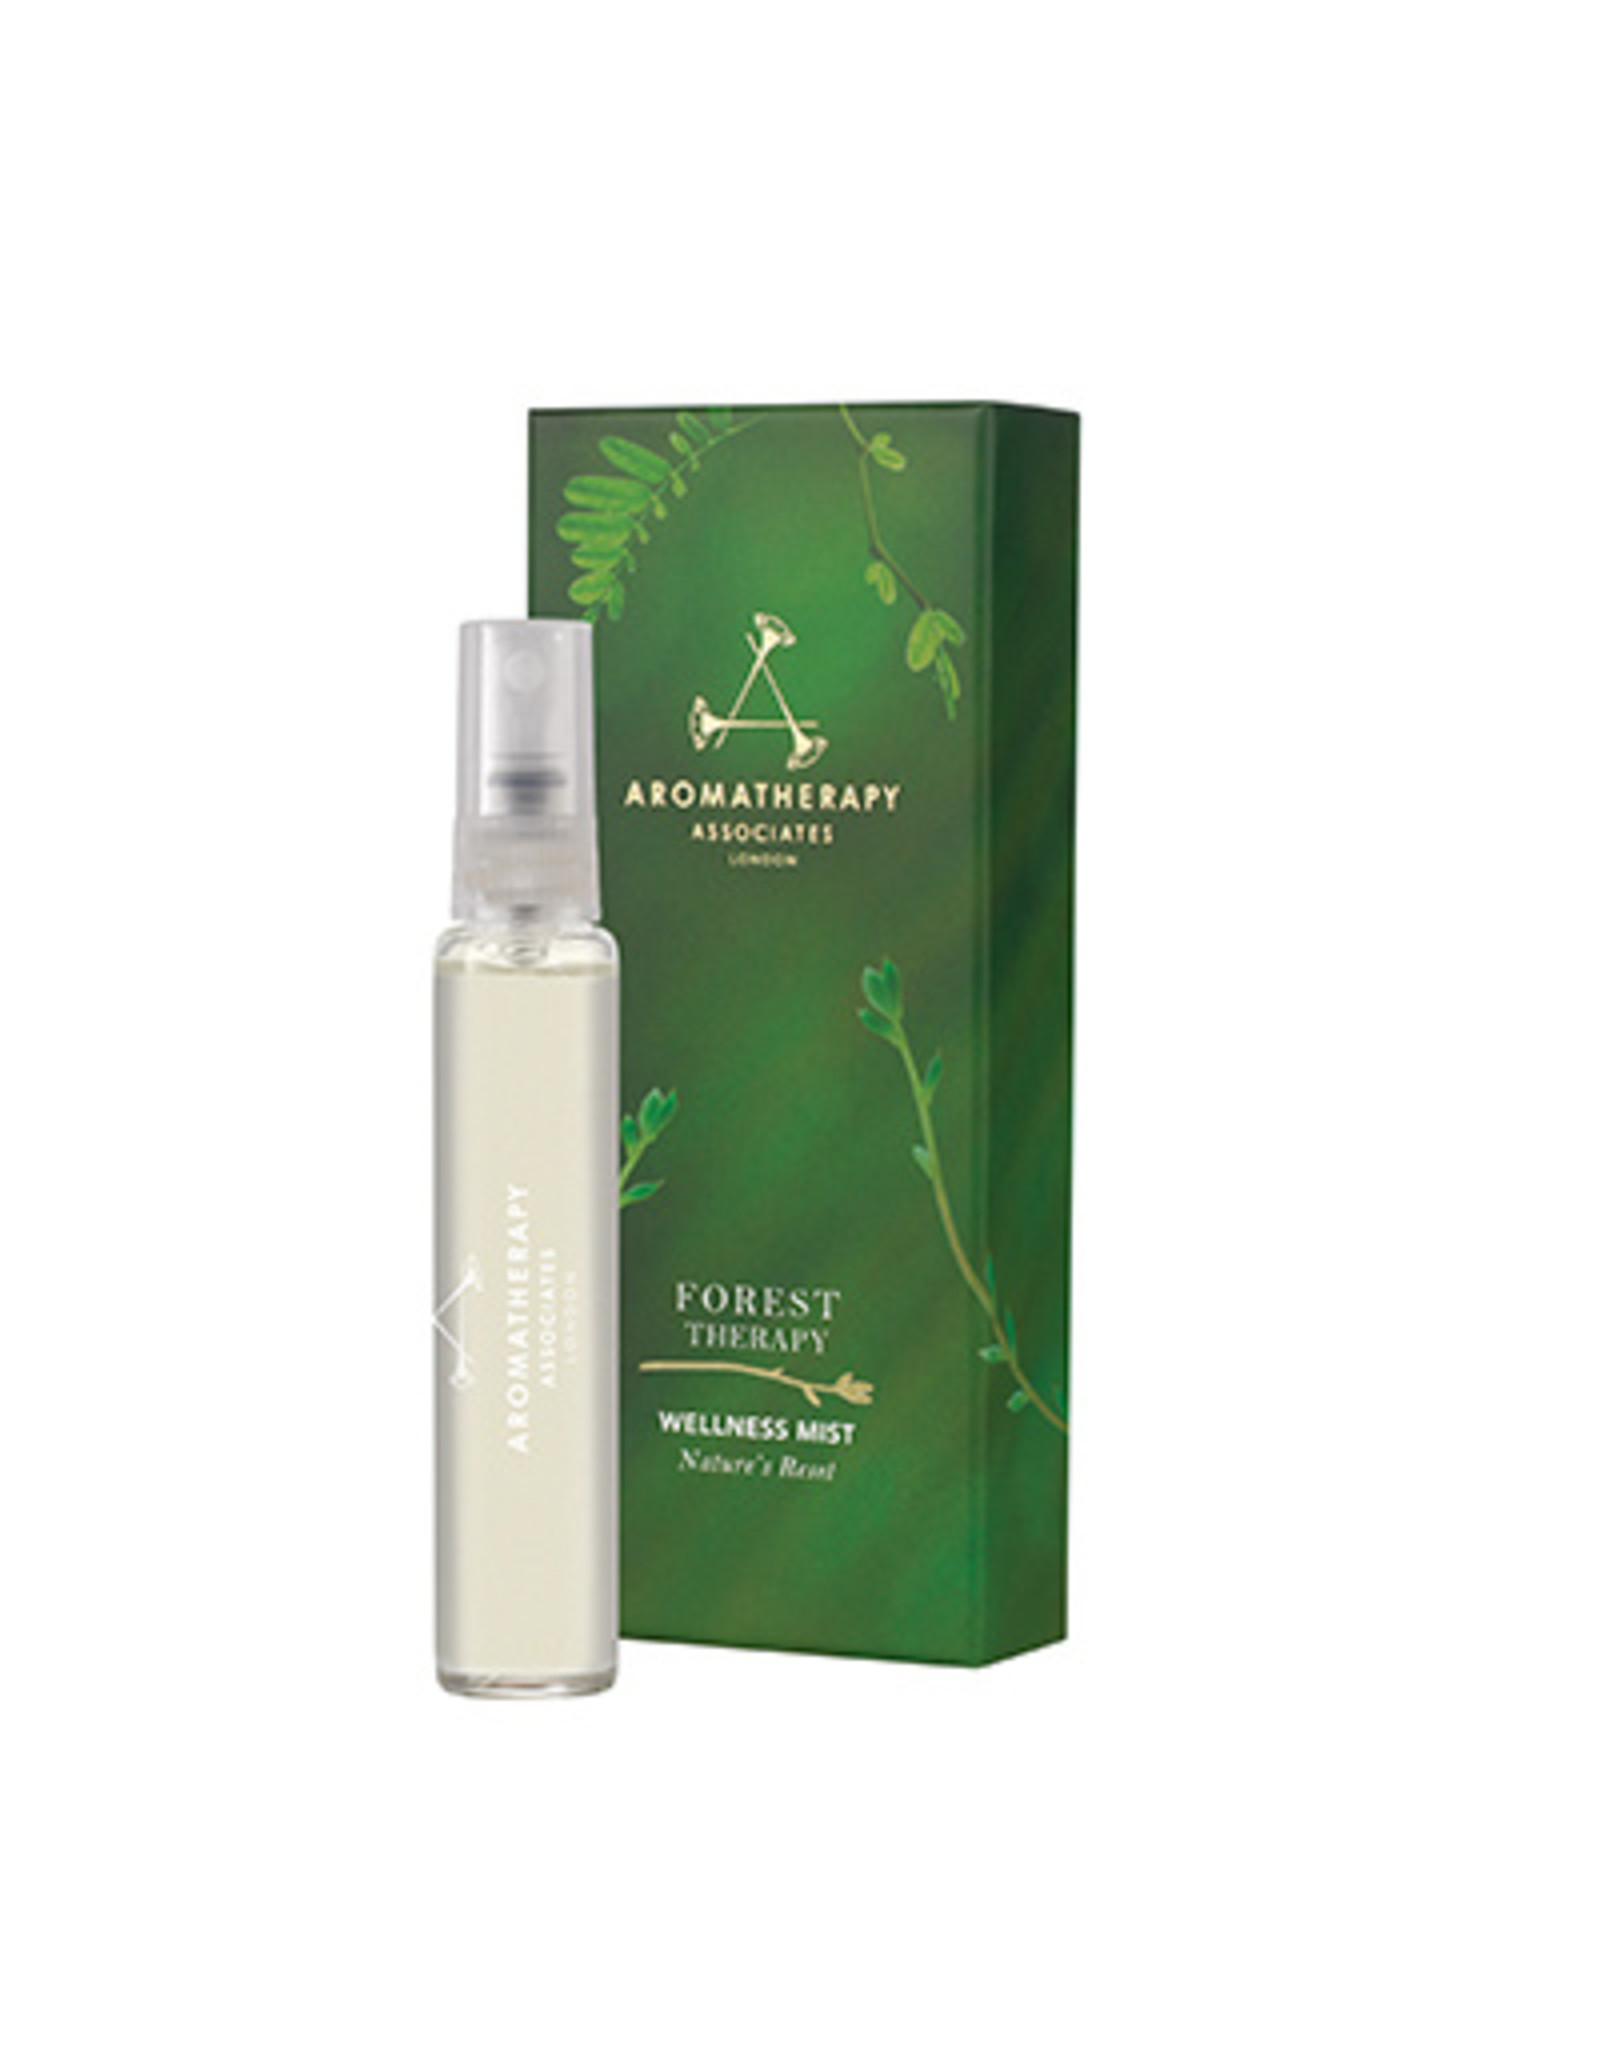 Aromatherapy Forest Therapy Wellness Mist, 10ml